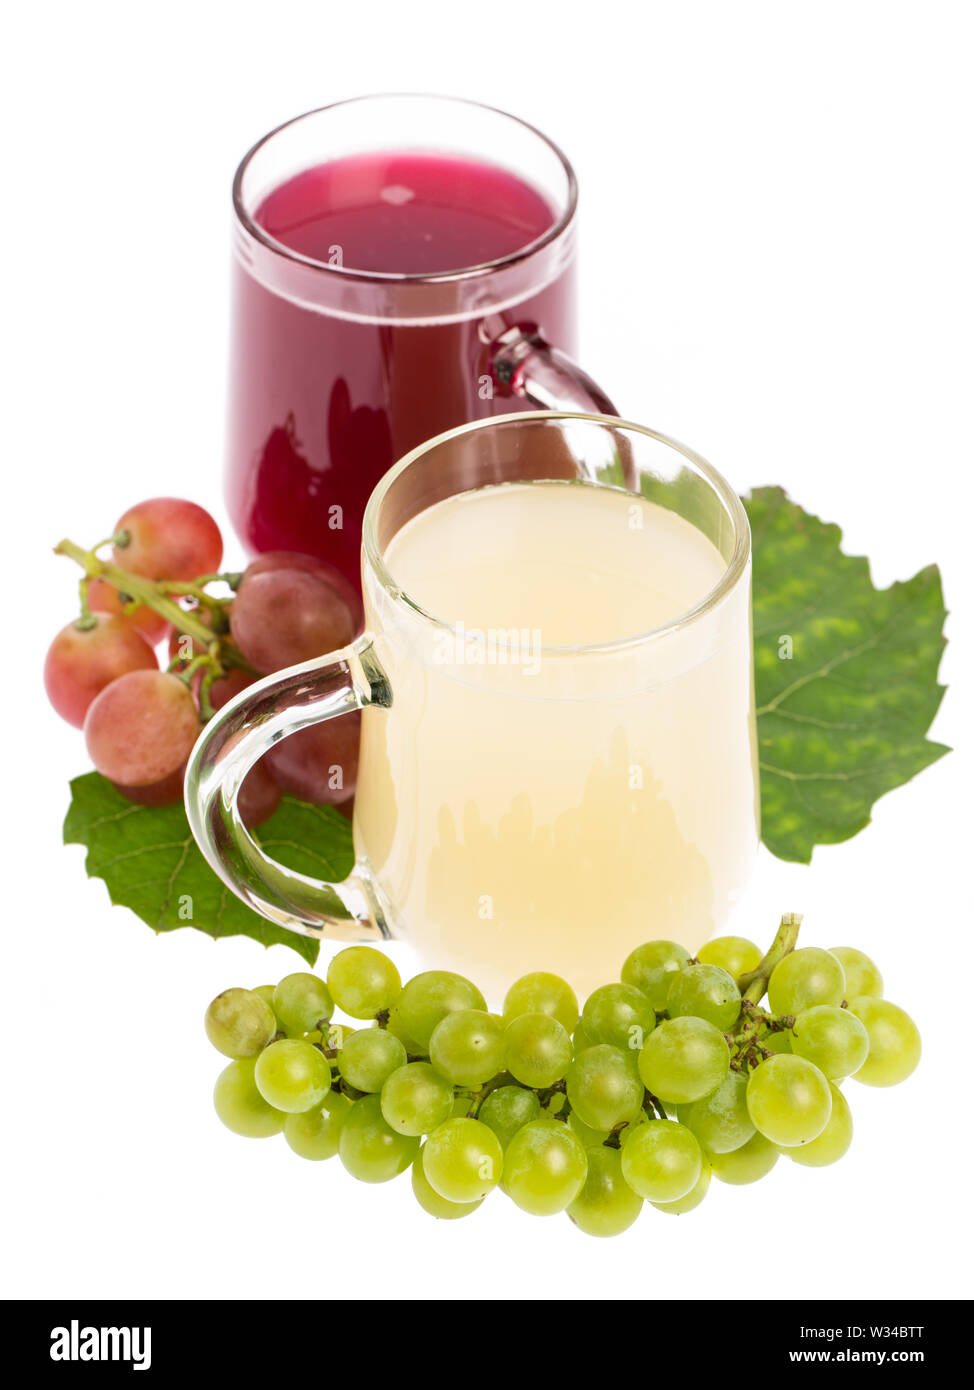 'Sturm': Red and white wine decorated with grapes - Stock Image